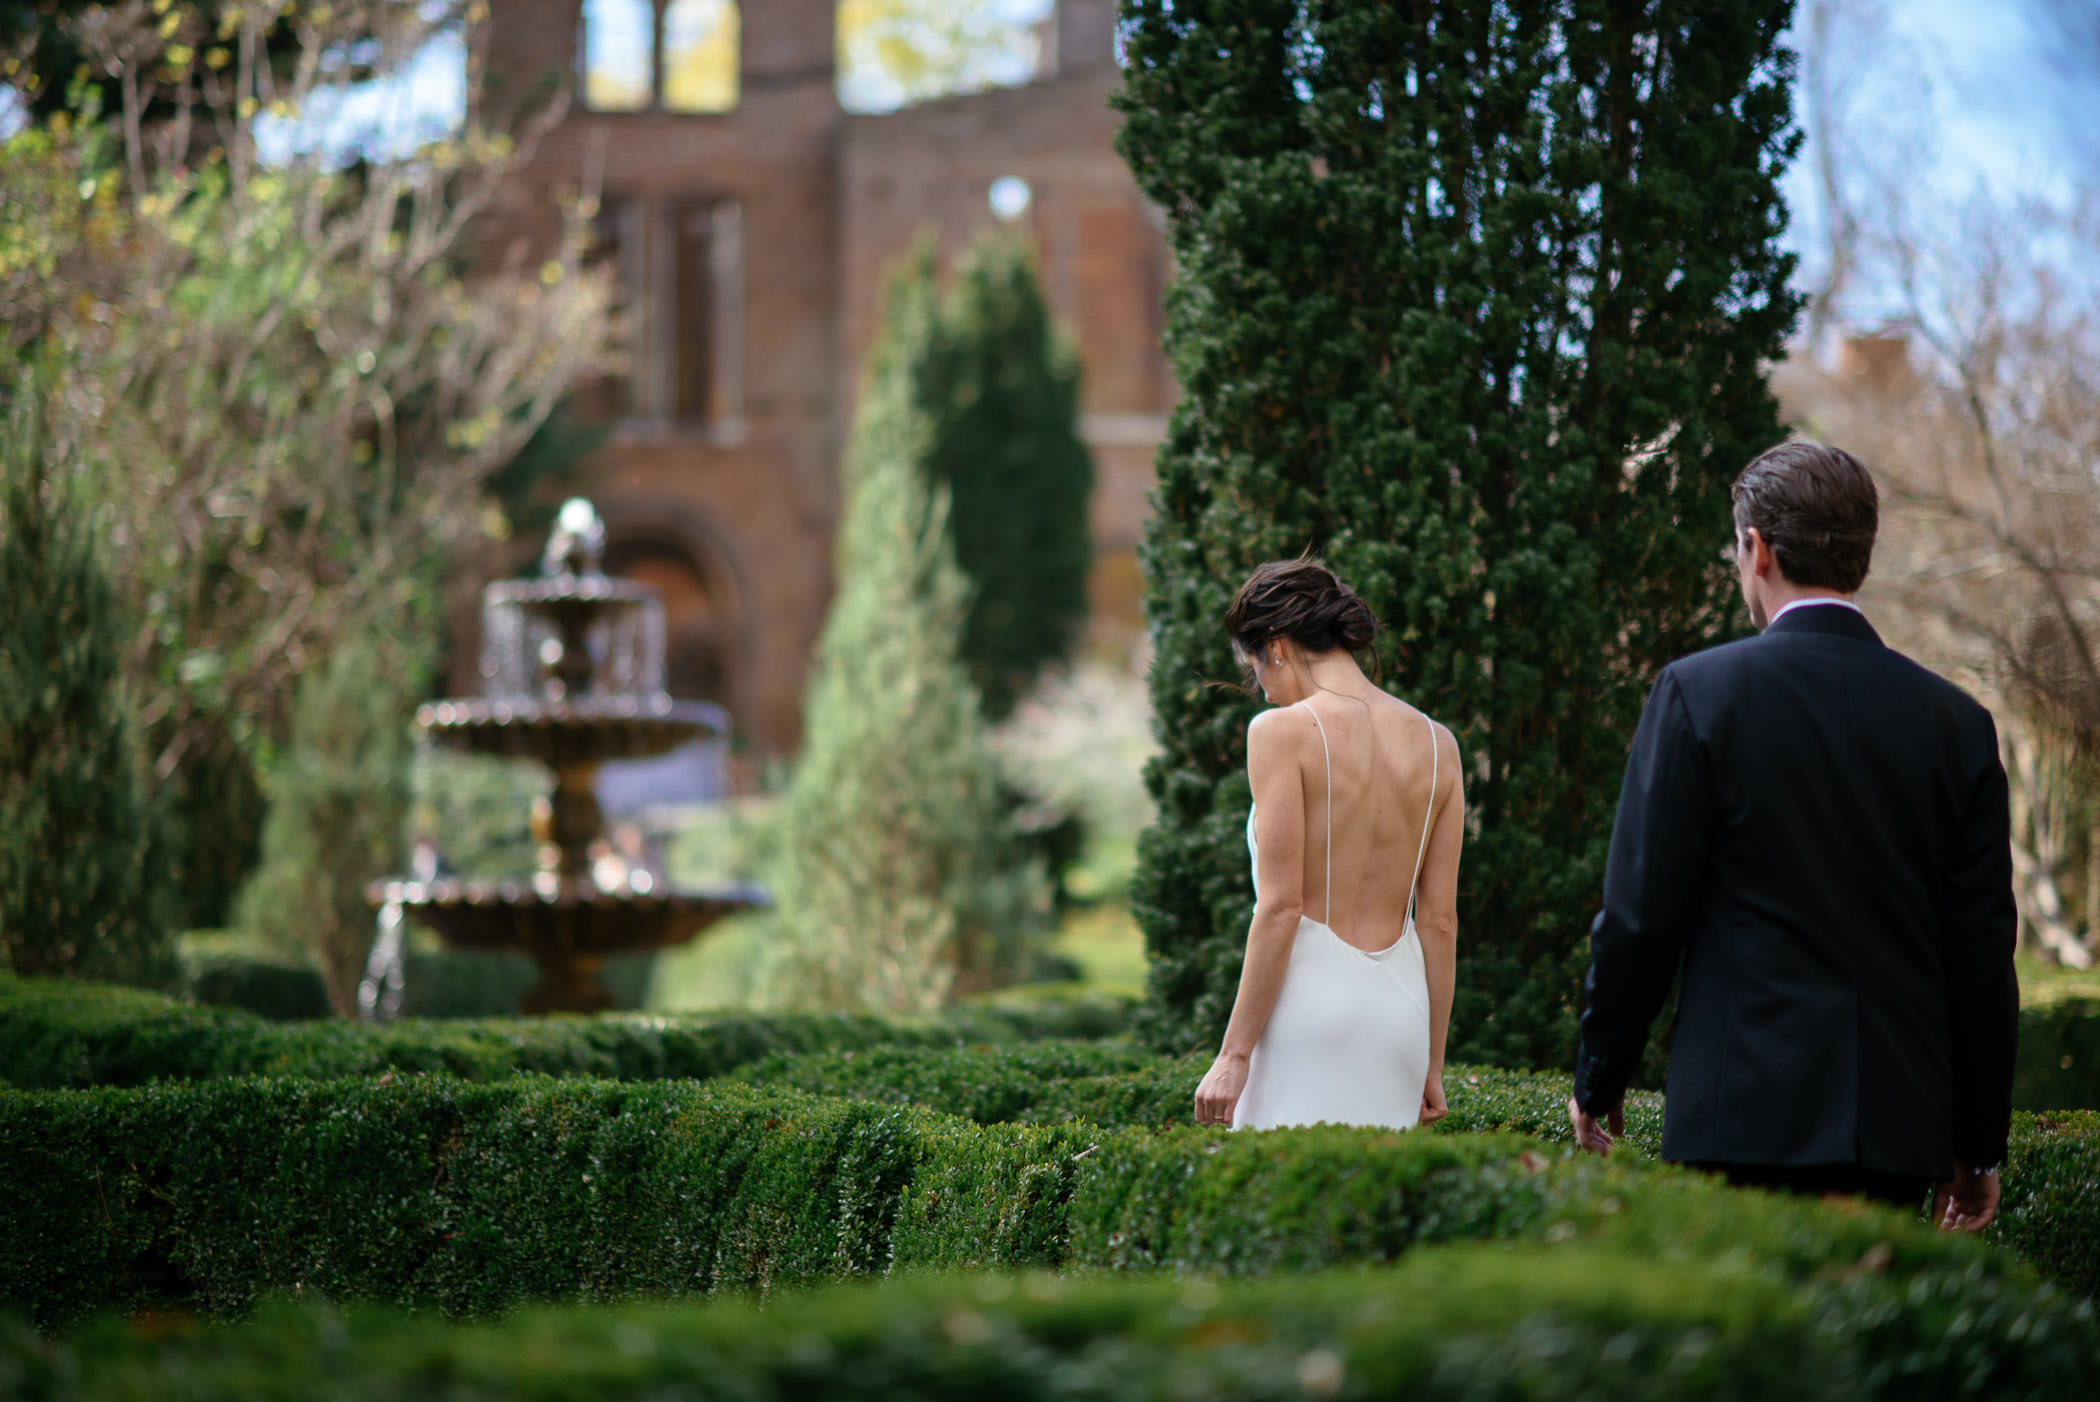 Autumn+Barnsley+Gardens+Wedding+Atlanta+Georgia_10.jpg